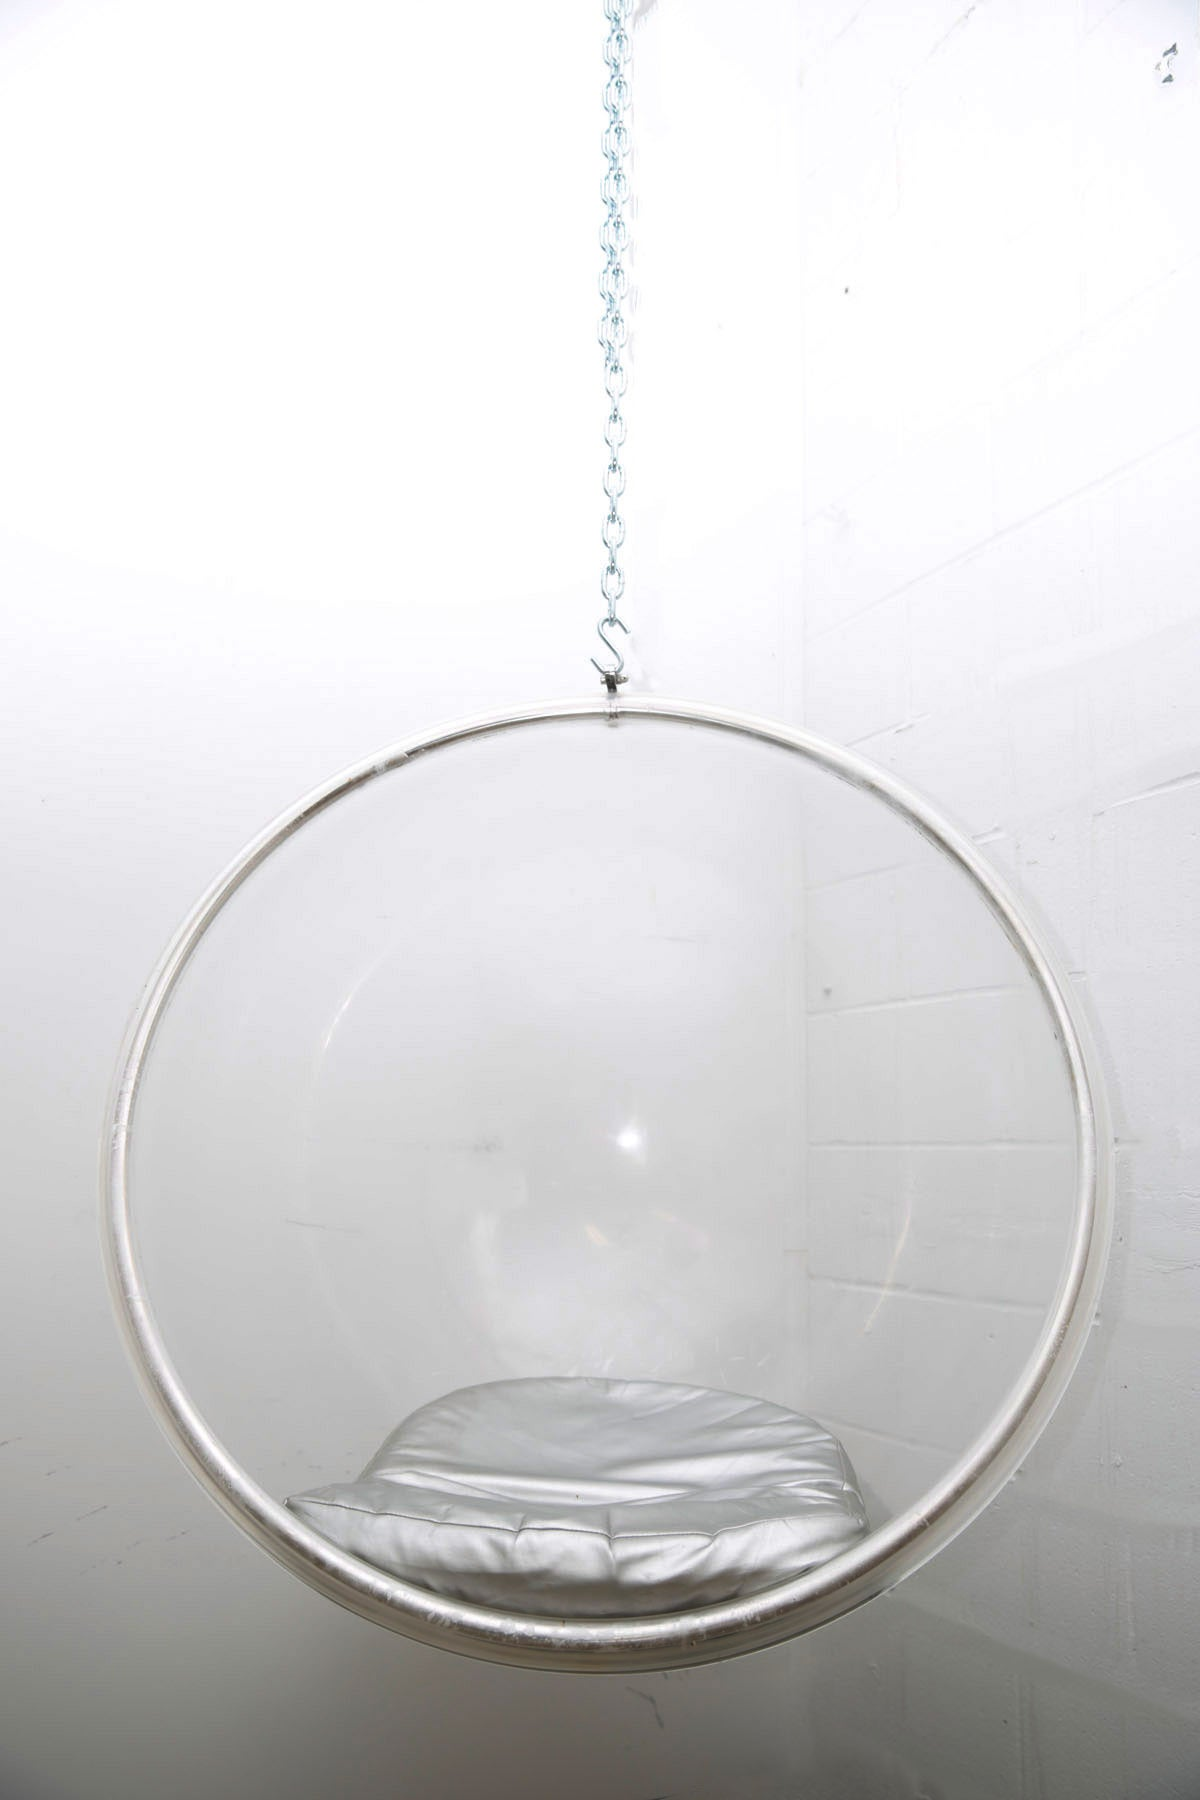 Bubble chair eero aarnio - Hanging Eero Aarnio Bubble Chair 3